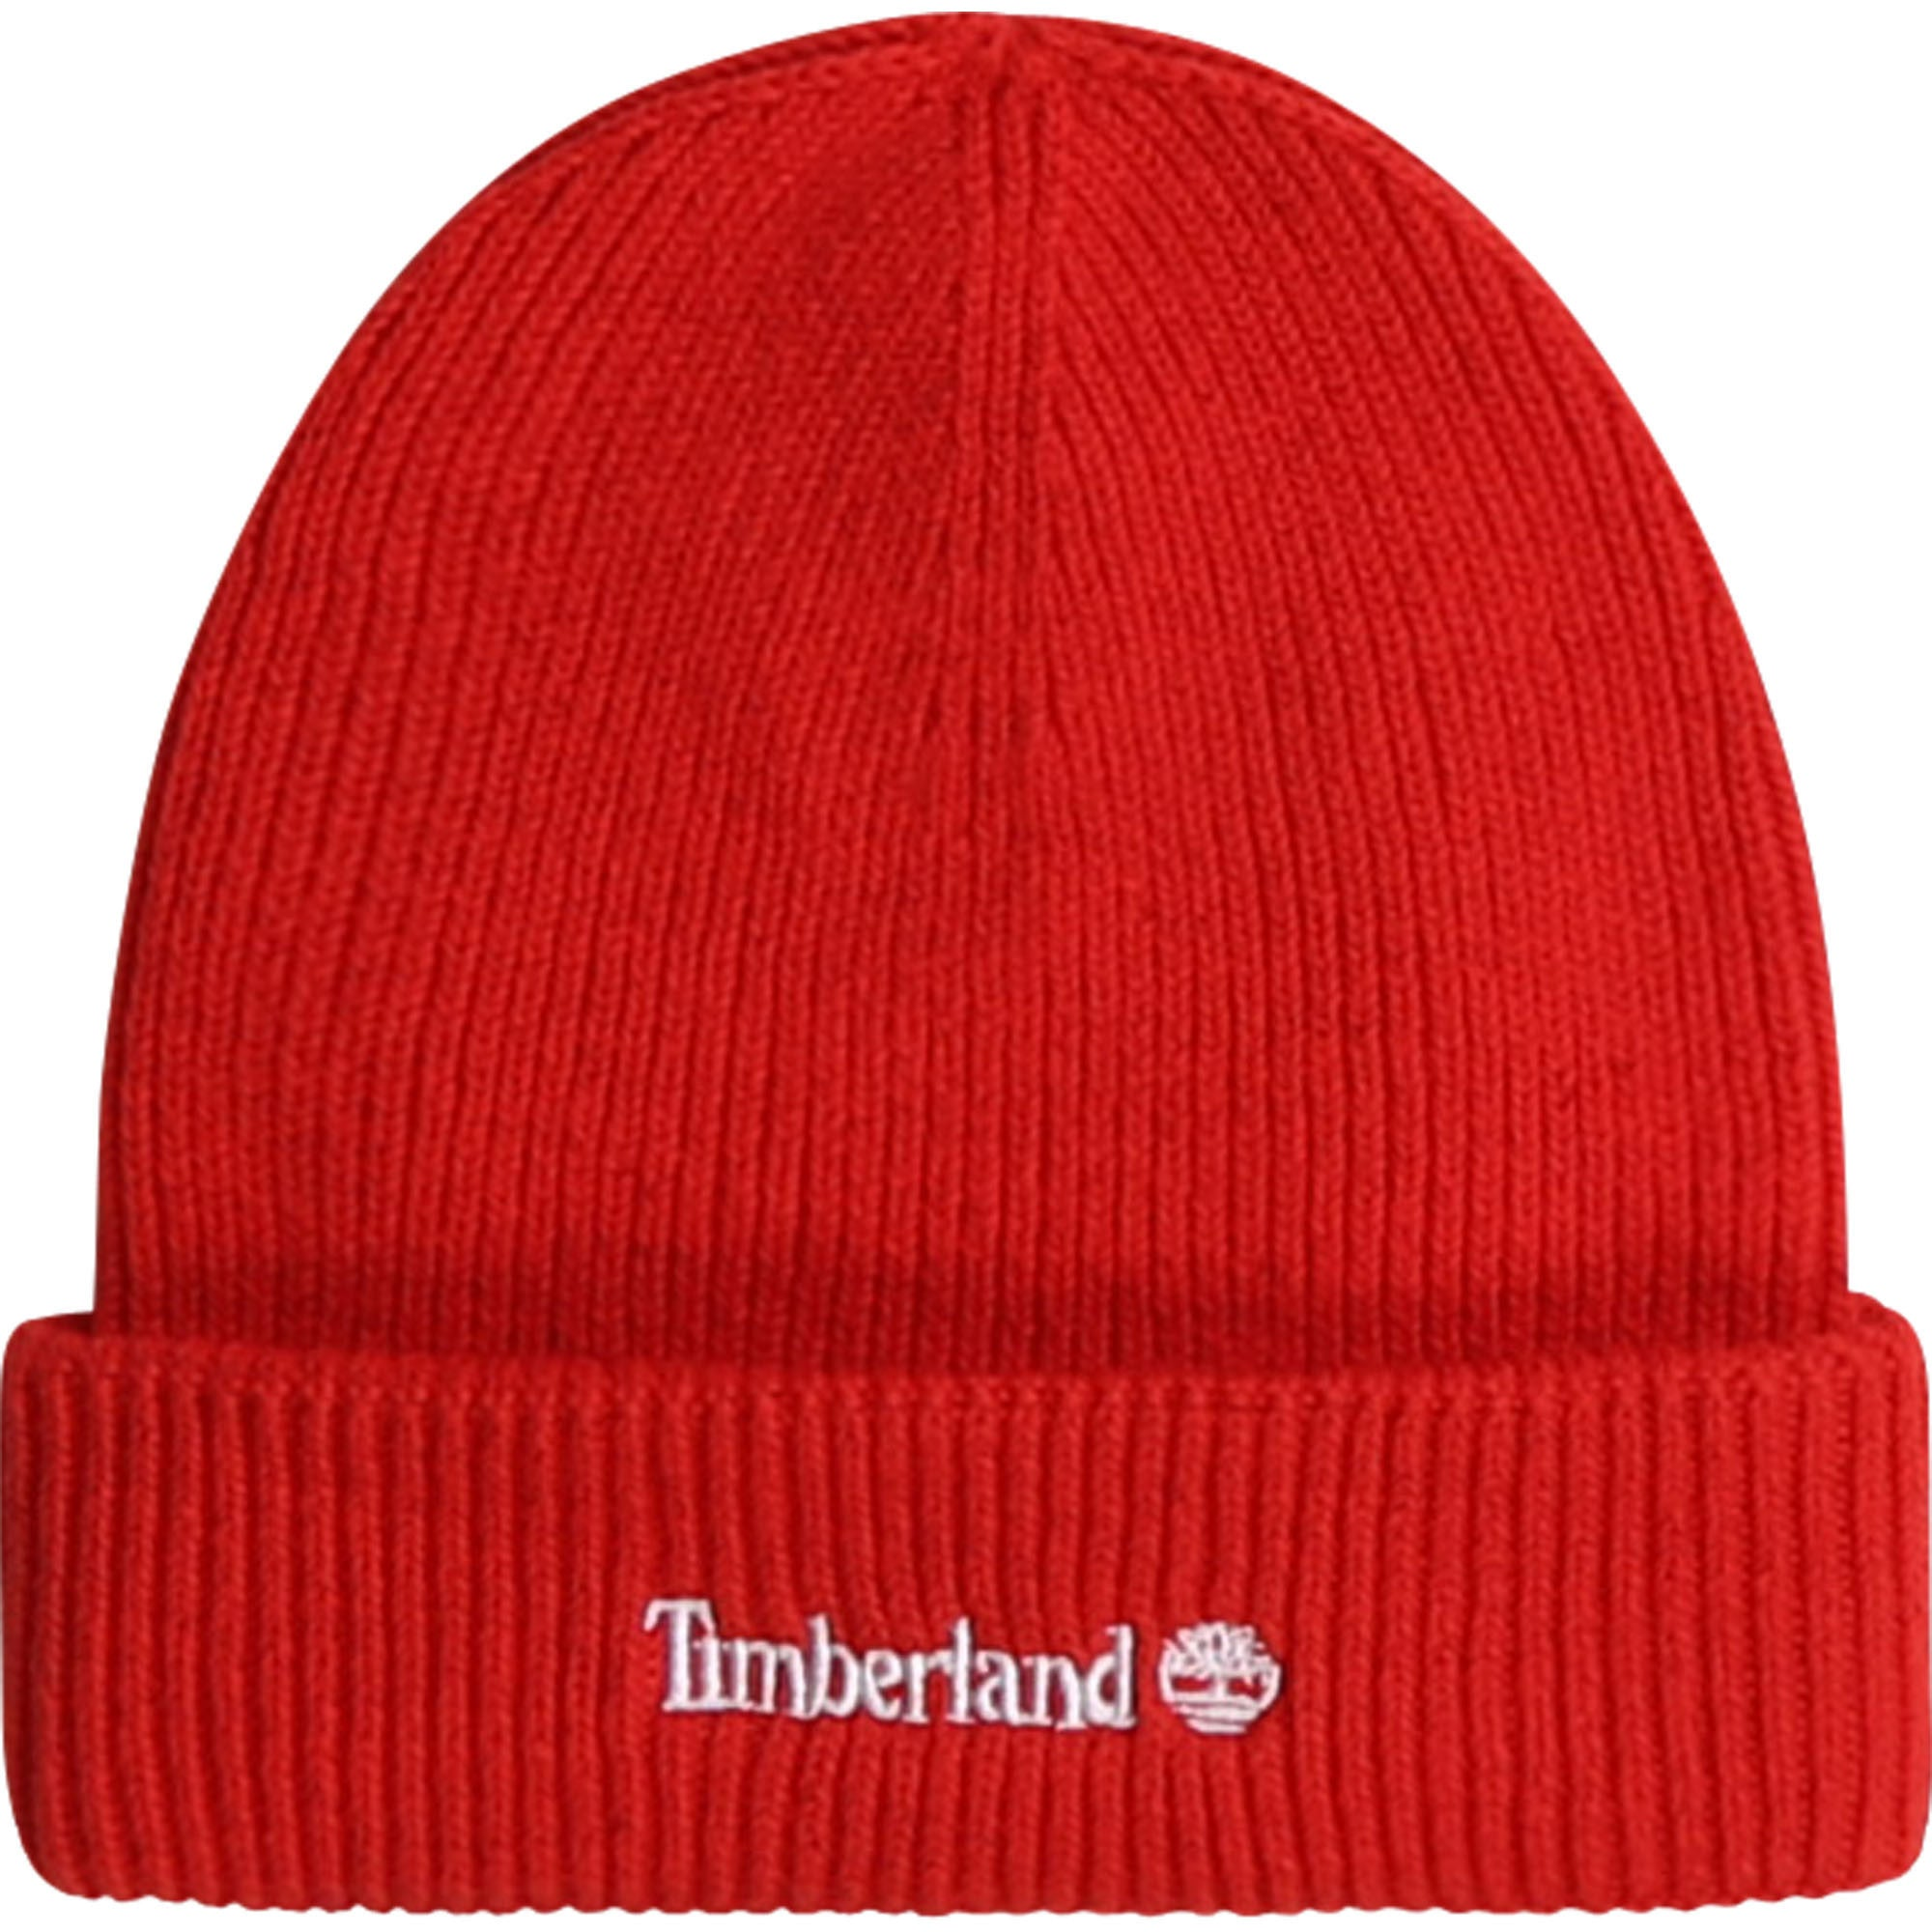 TIMBERLAND PULL ON HAT RED